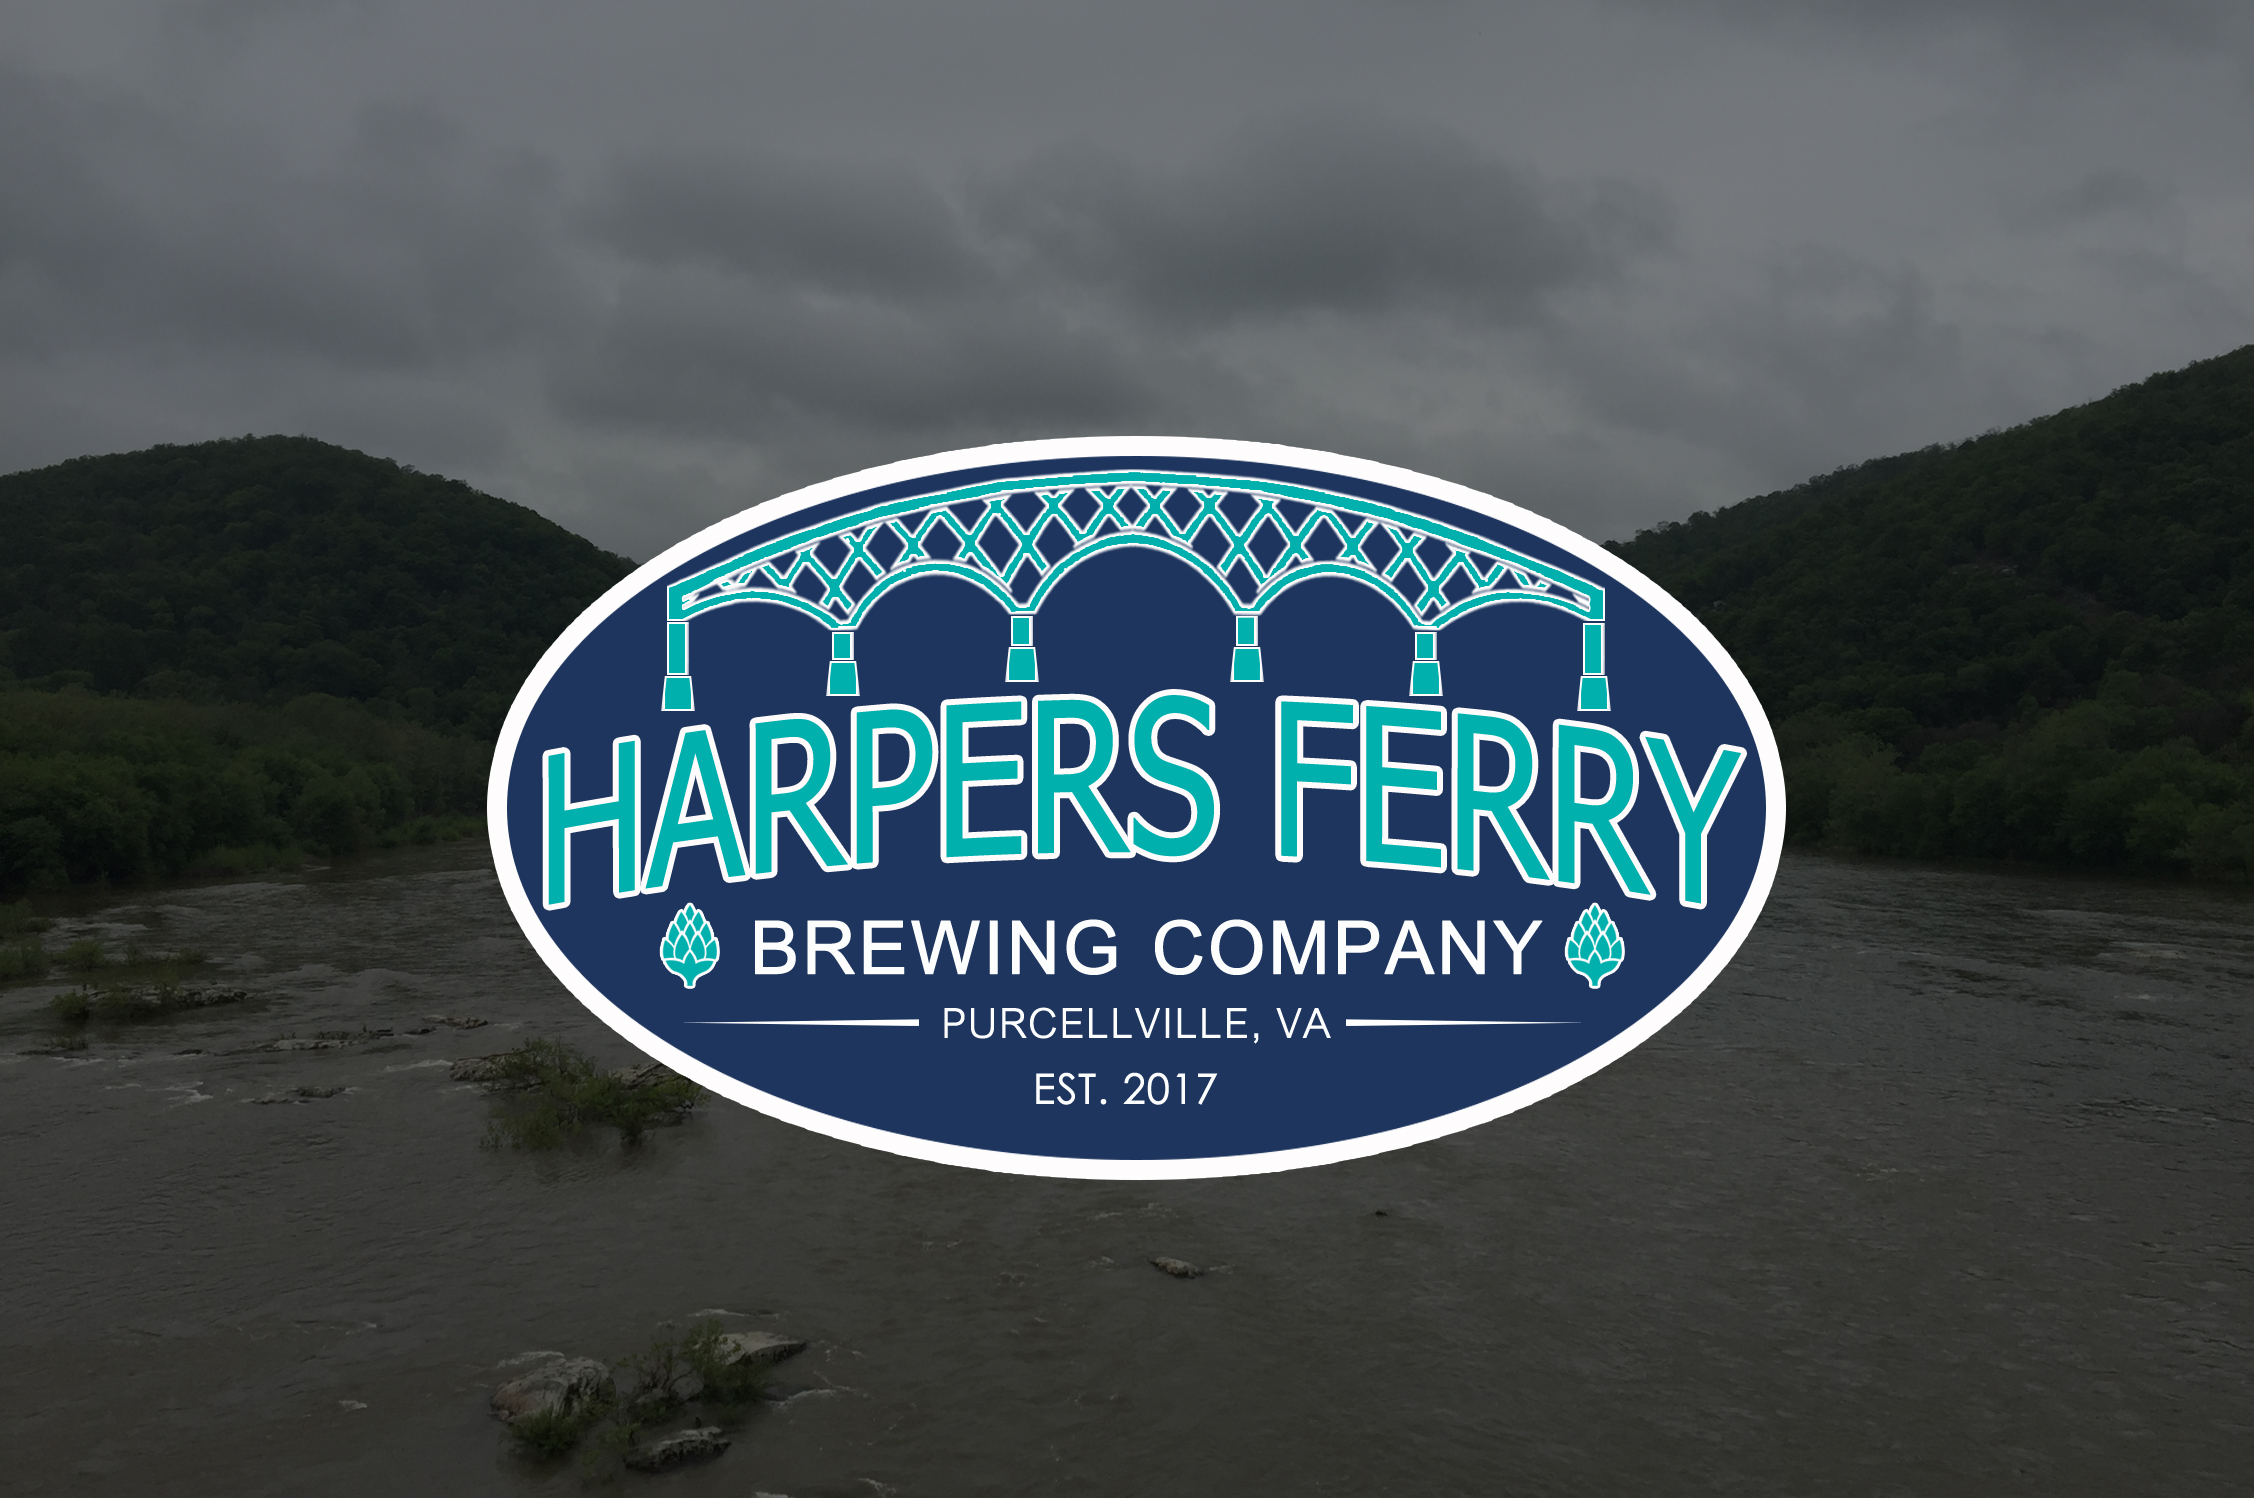 Logo Design by JSDESIGNGROUP - Entry No. 107 in the Logo Design Contest Unique Logo Design Wanted for Harpers ferry brewing company.